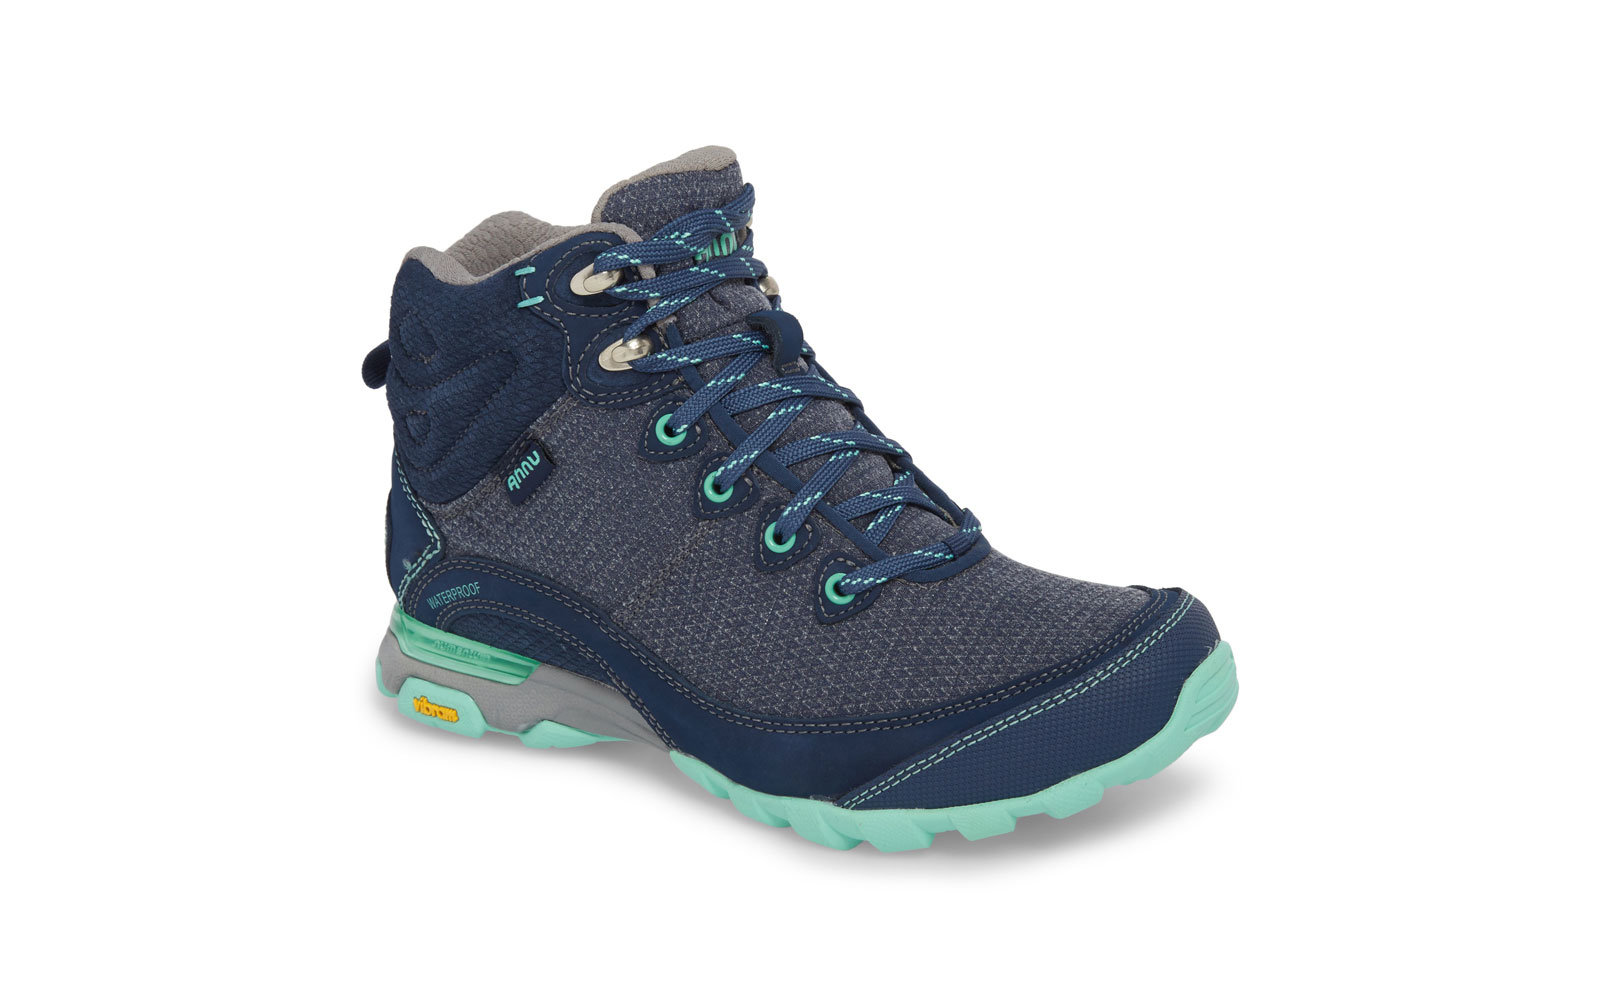 9424c48afbb 9 Cute Hiking Boots to Take You From Trail to Town